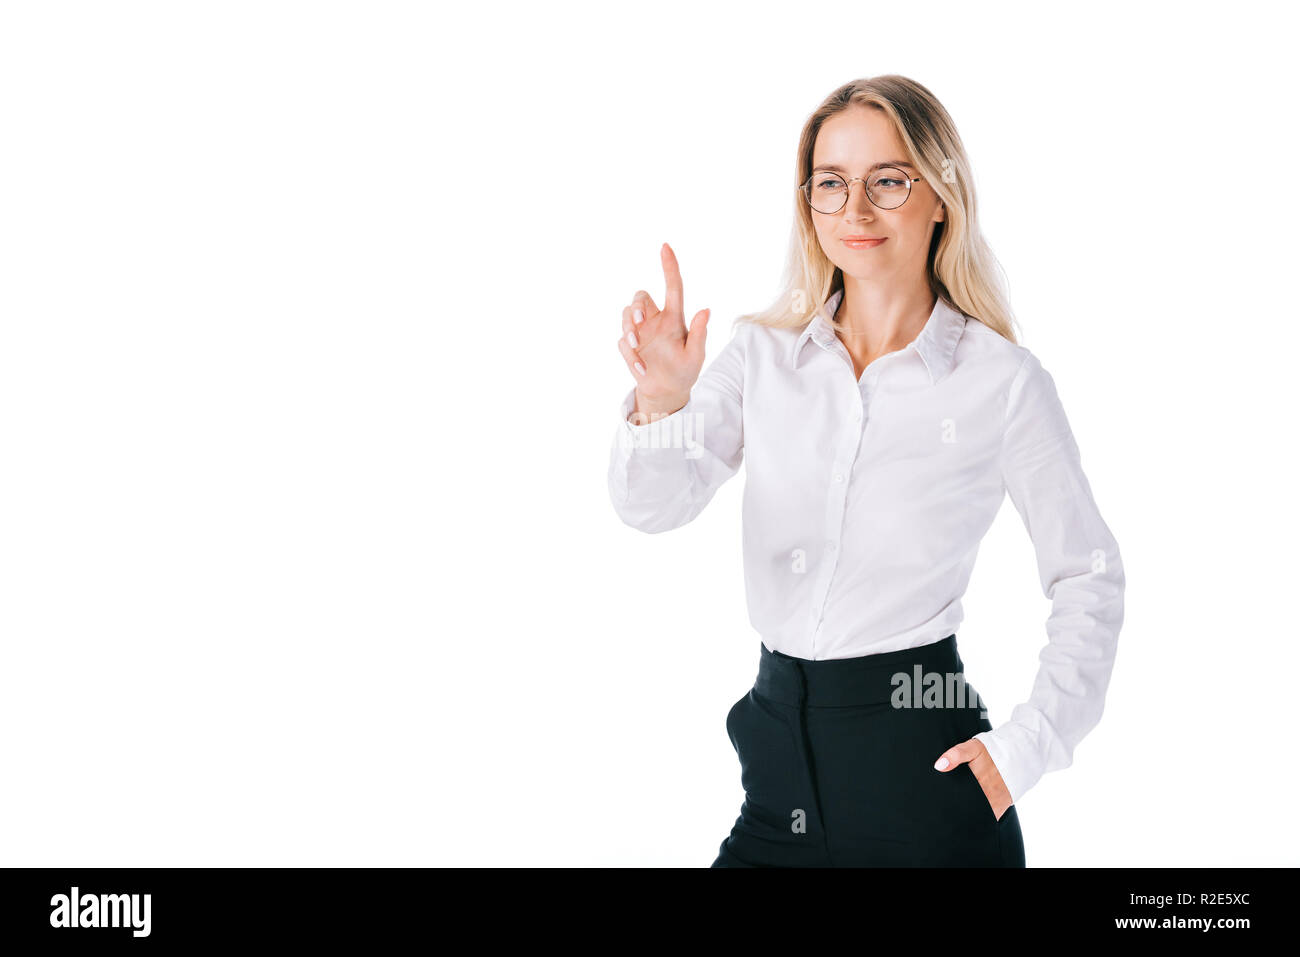 portrait of smiling businesswoman in formal wear gesturing isolated on white - Stock Image